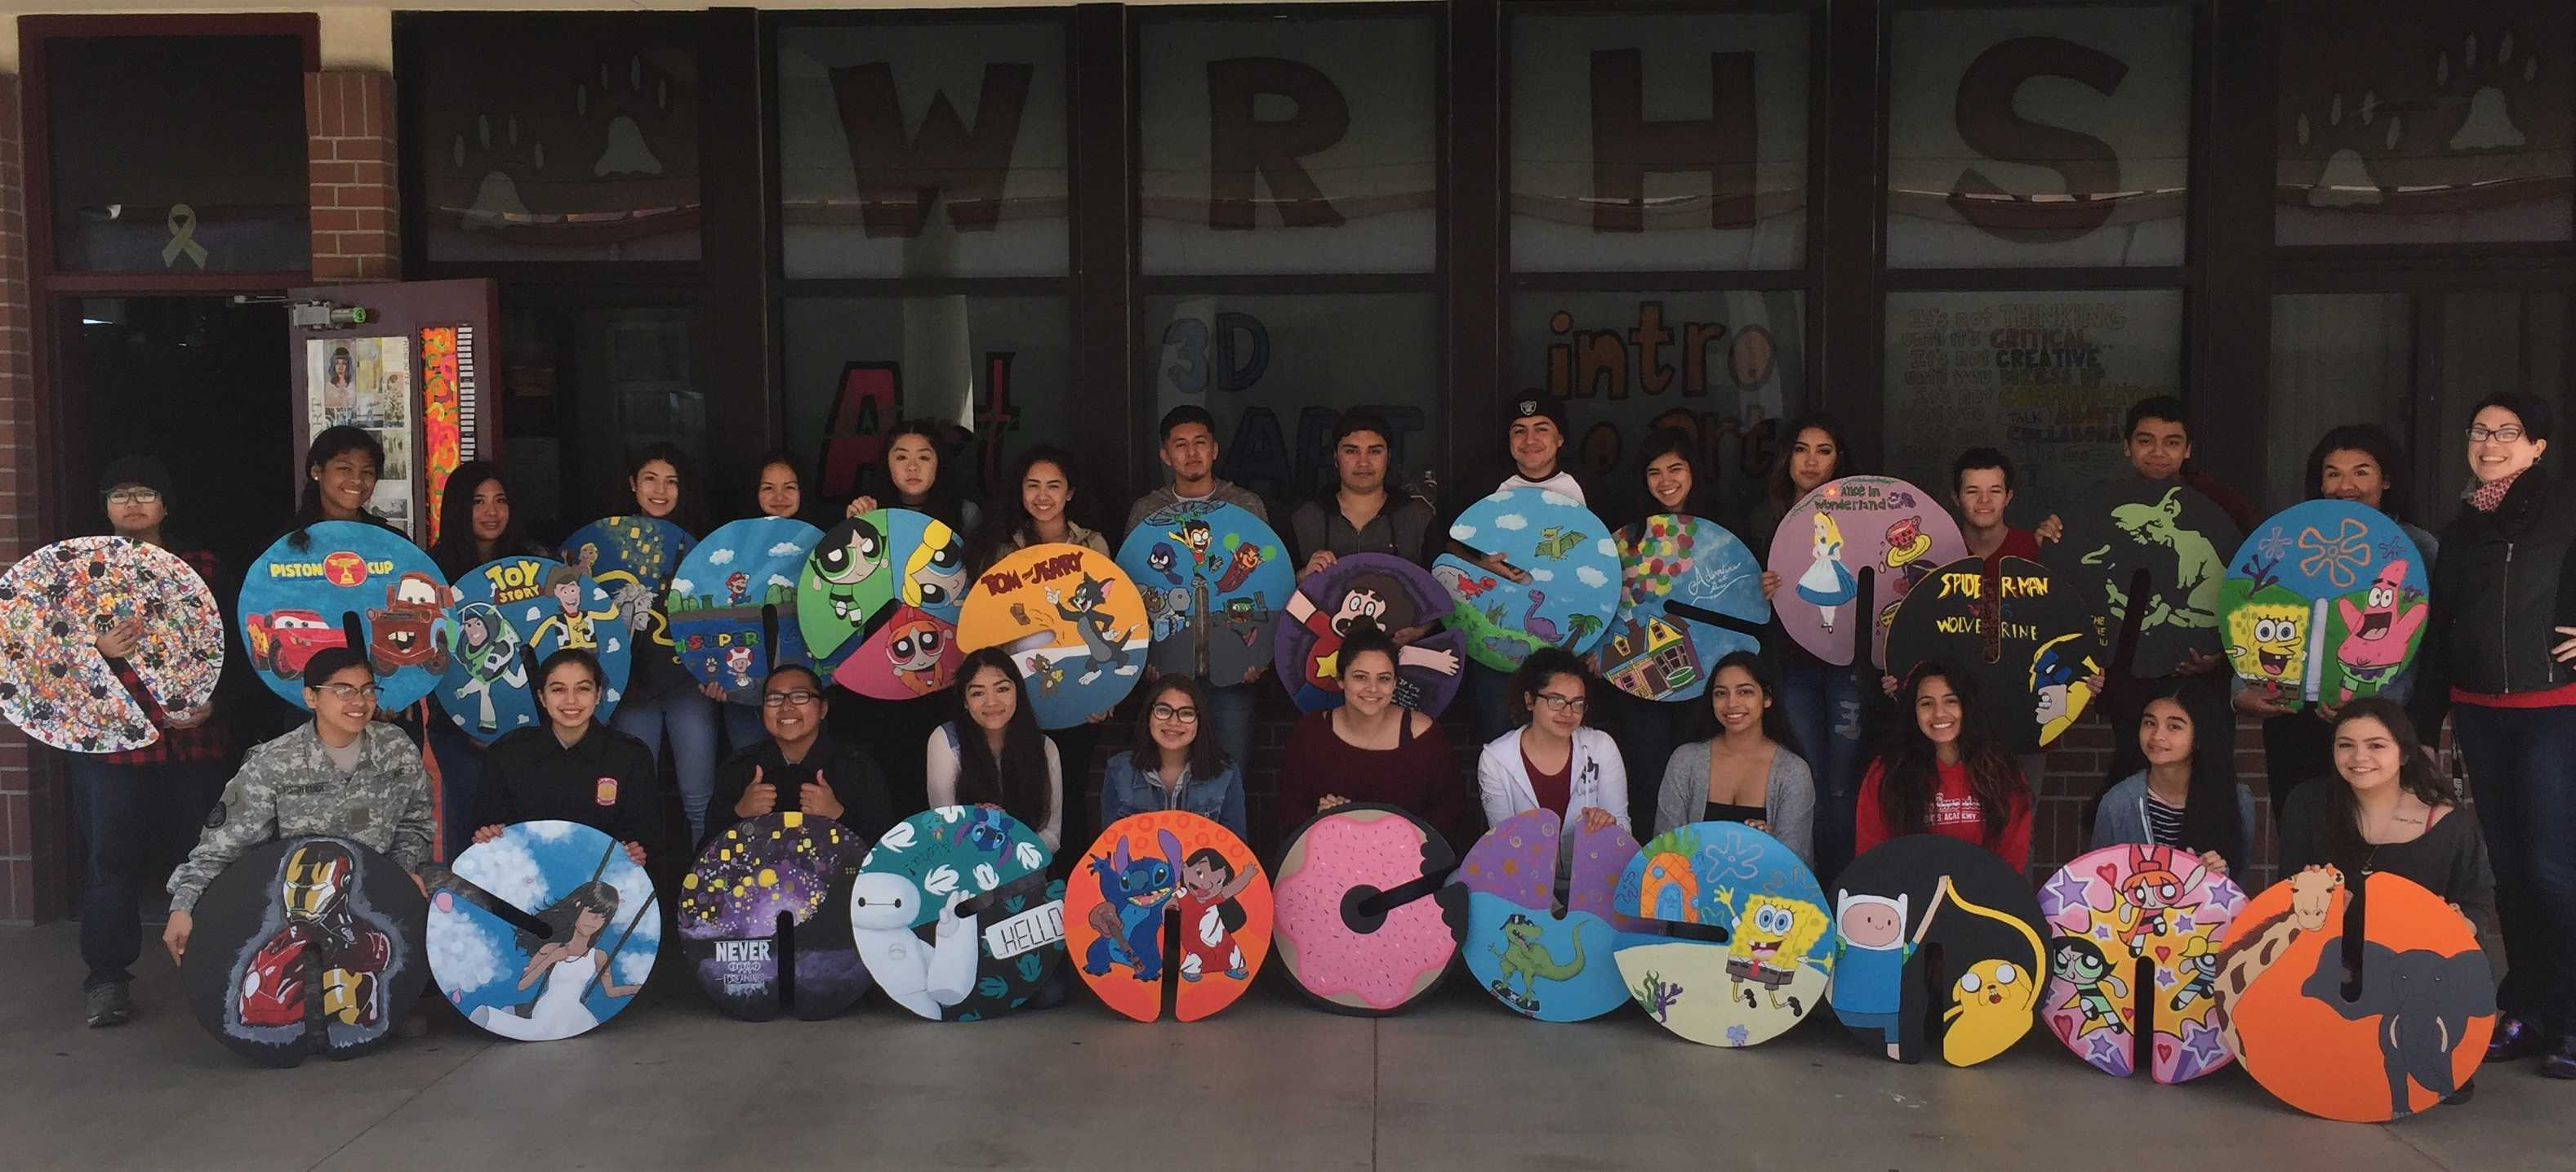 Weston Ranch art class creates project for children in an area hospital.